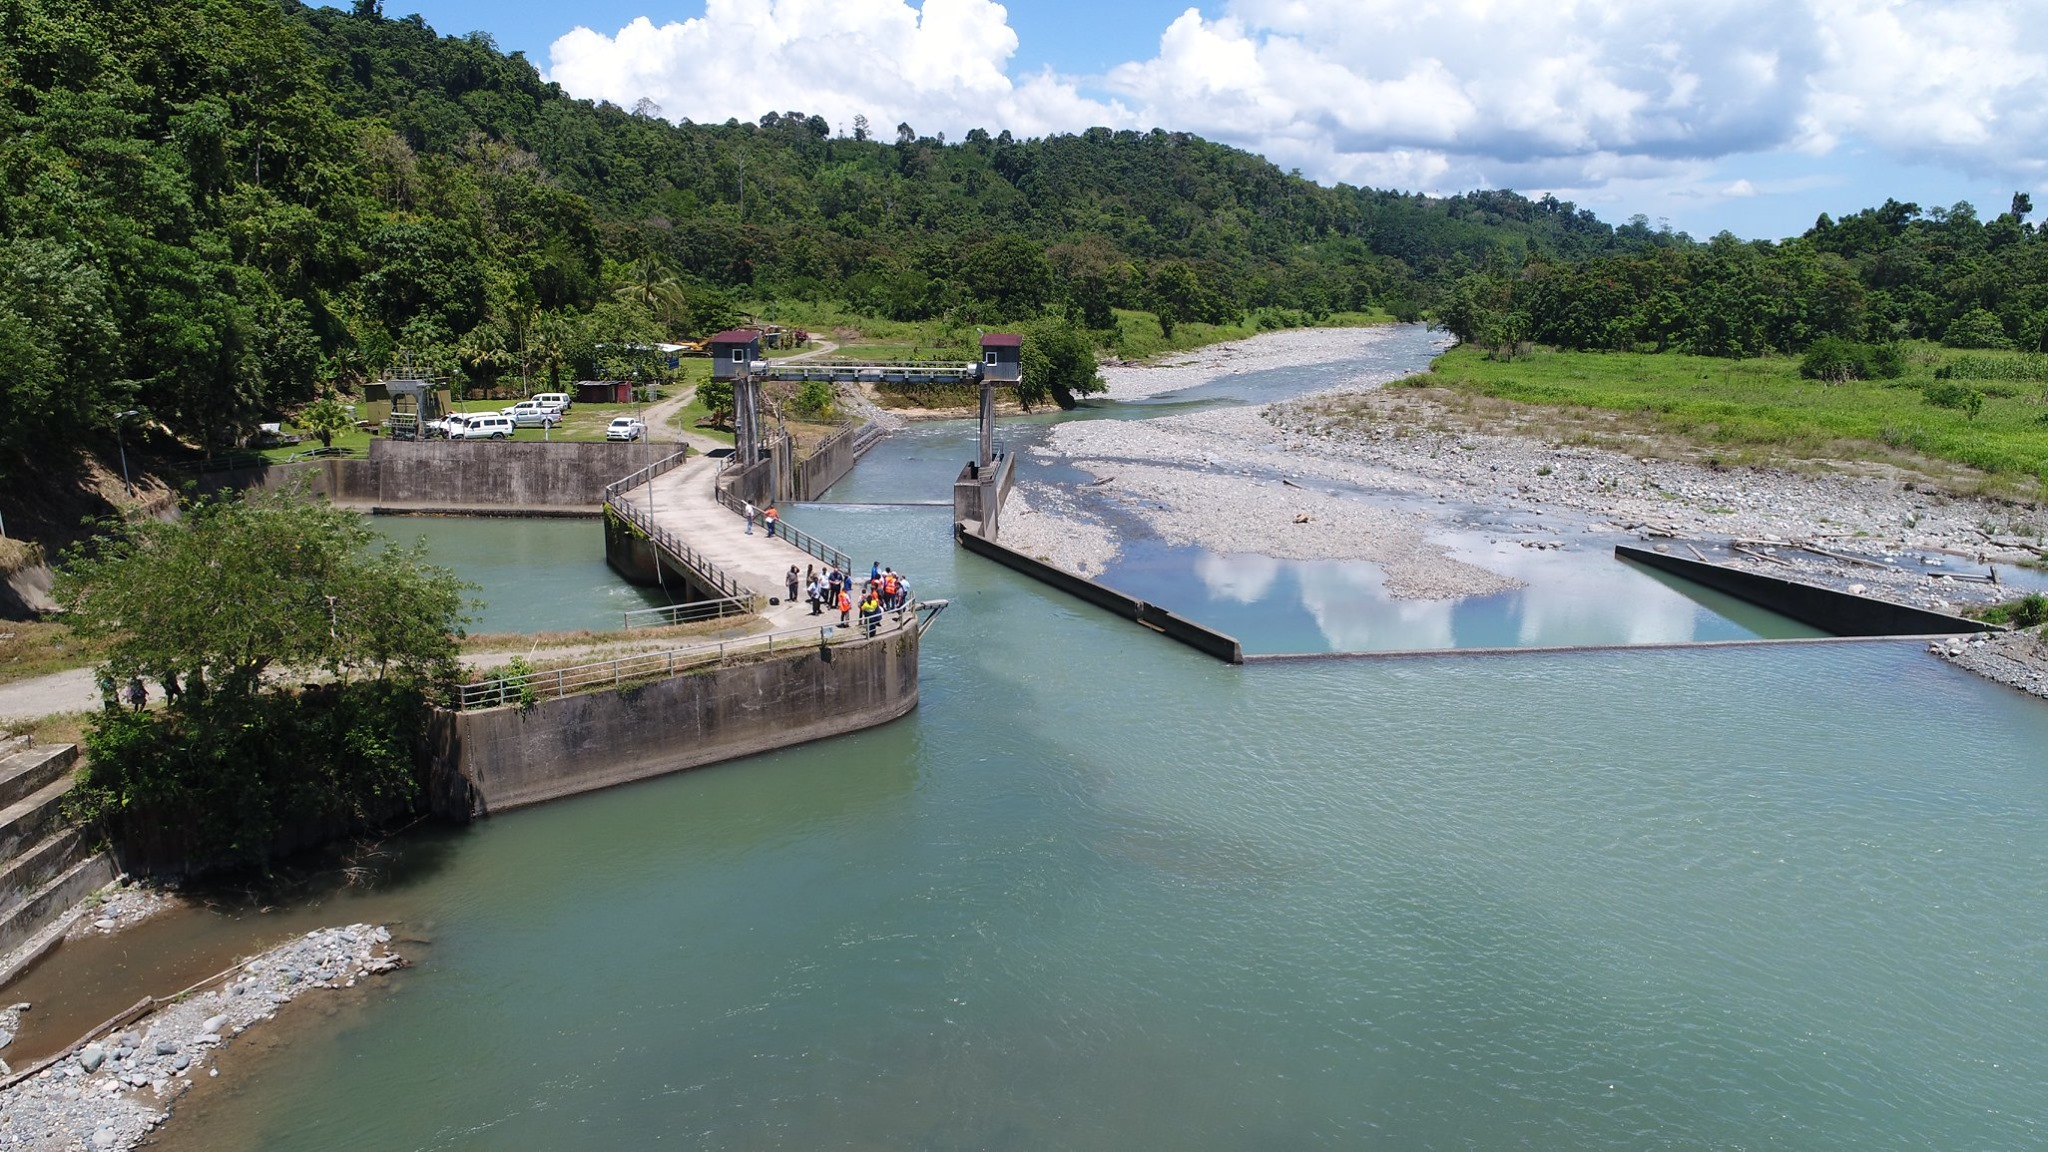 Rehabilitation work commences on the Warangoi Hydropower Station